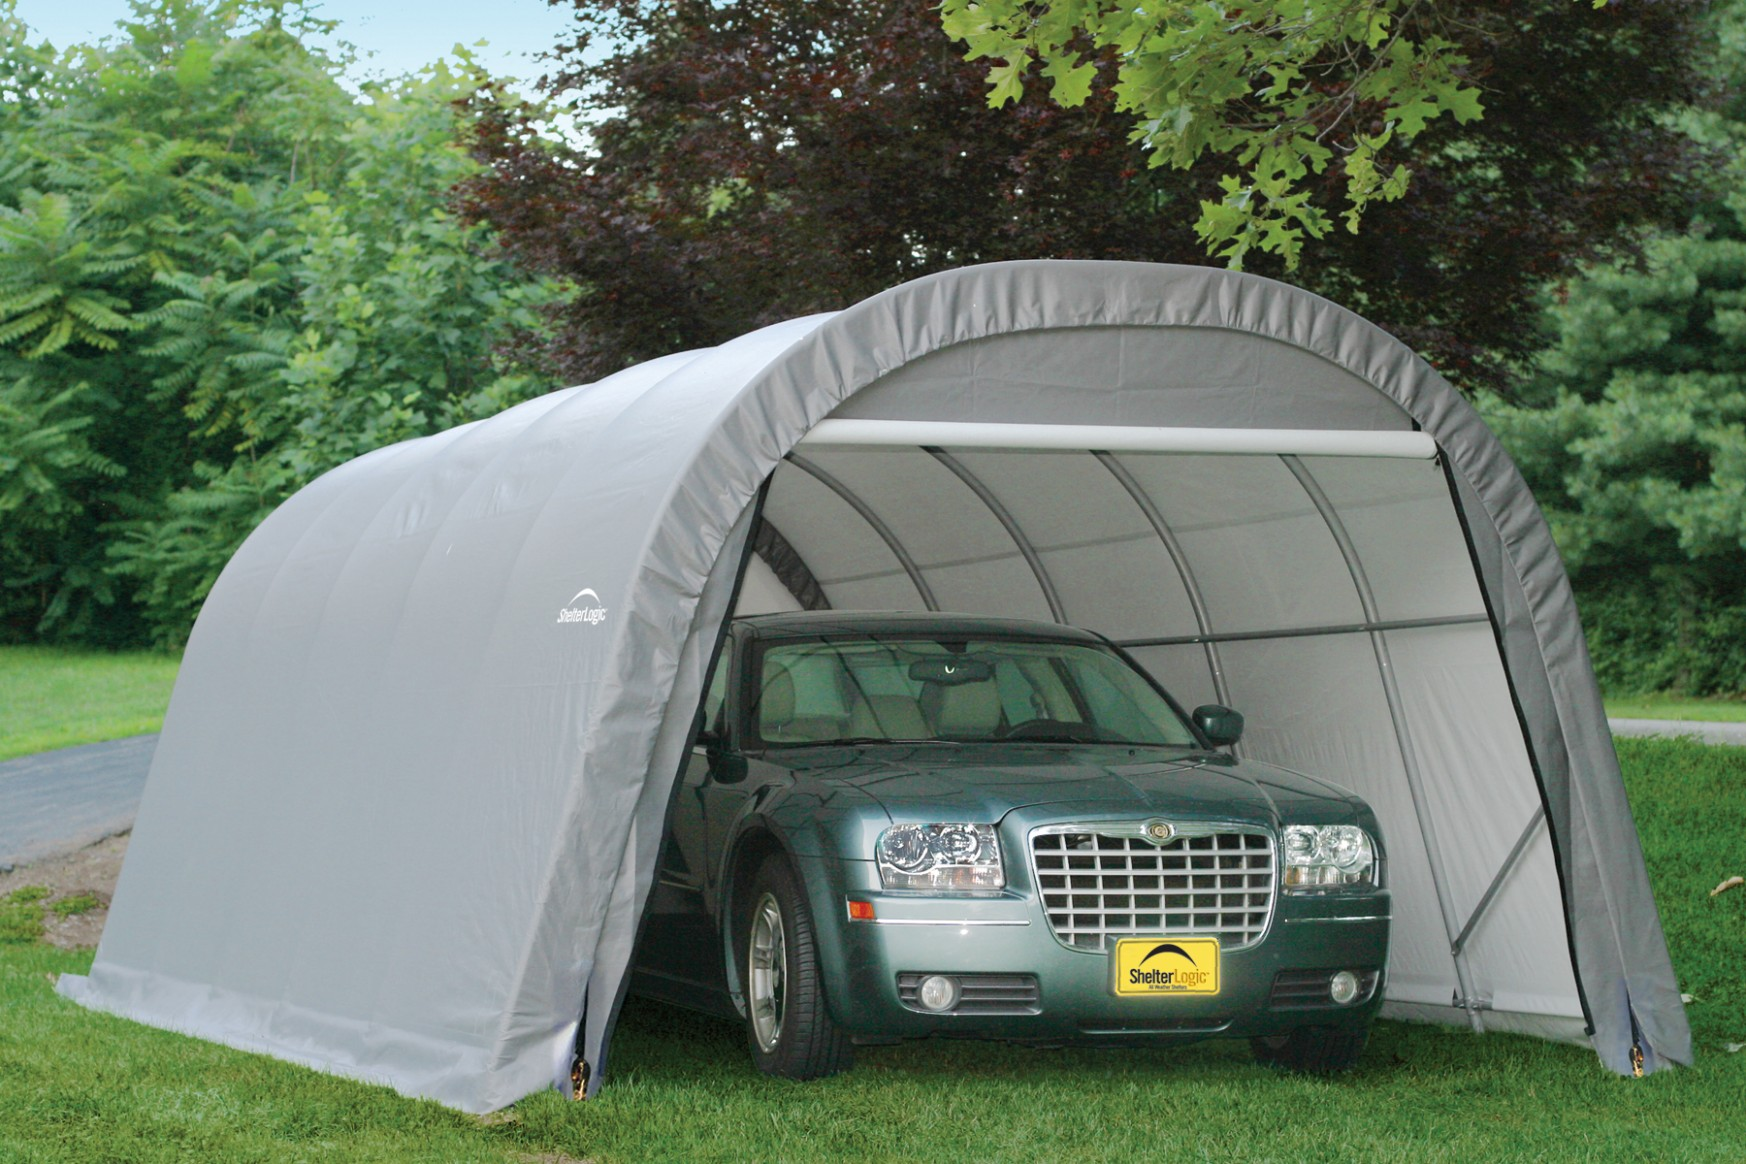 13 Ideas To Organize Your Own Portable Garage Carport | portable garage carport